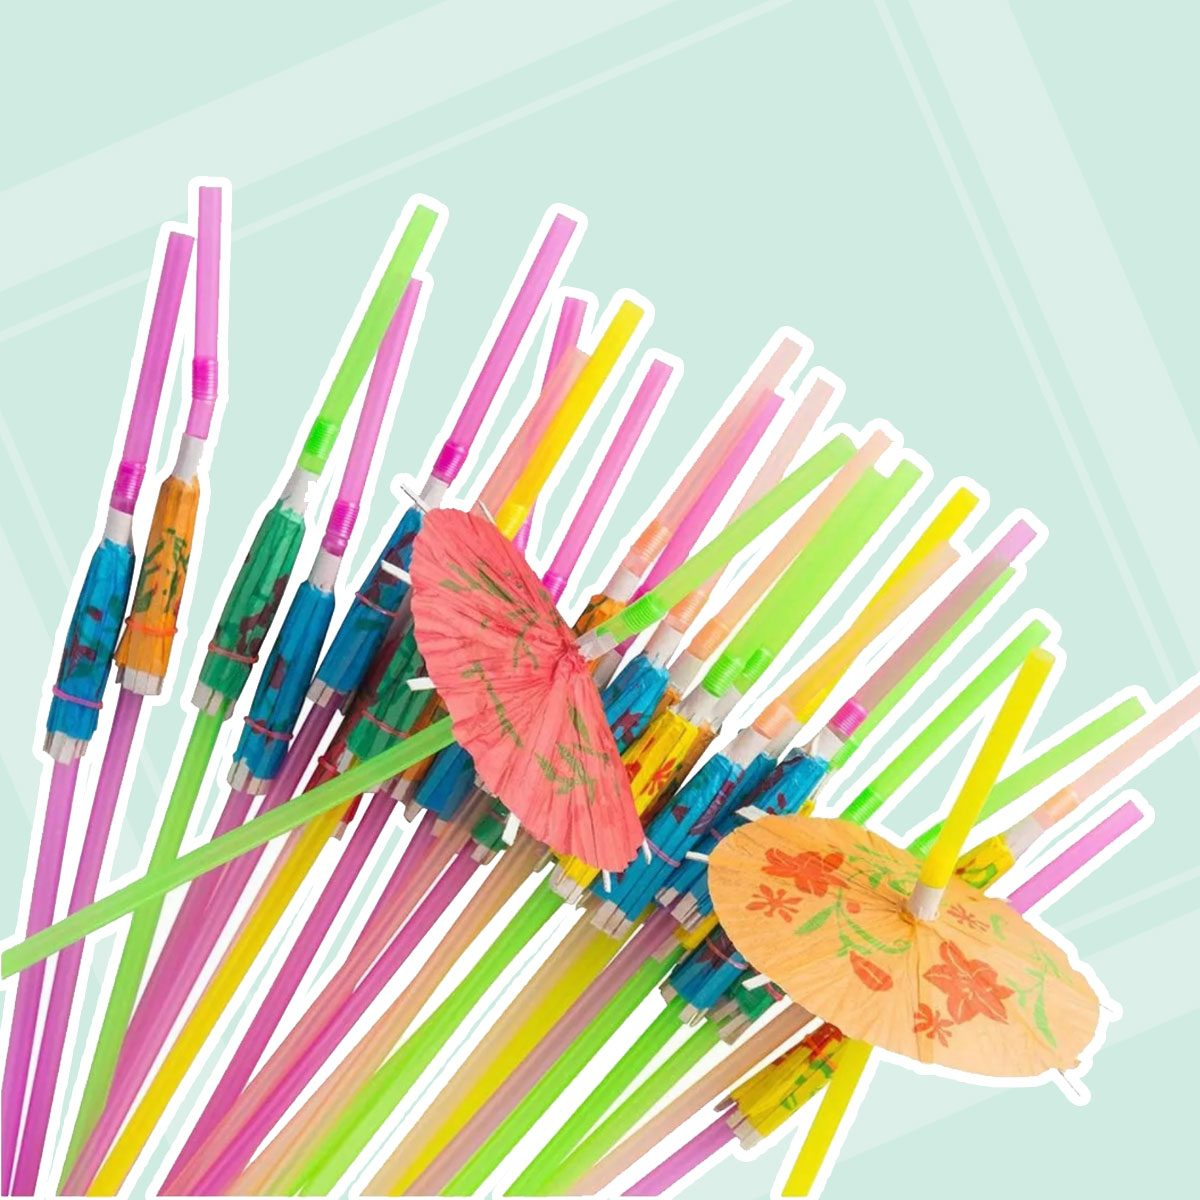 Blue Panda Disposable Tropical Hawaiian Luau Party Umbrella Cocktail Drink Straws, Assorted, 150 Pack